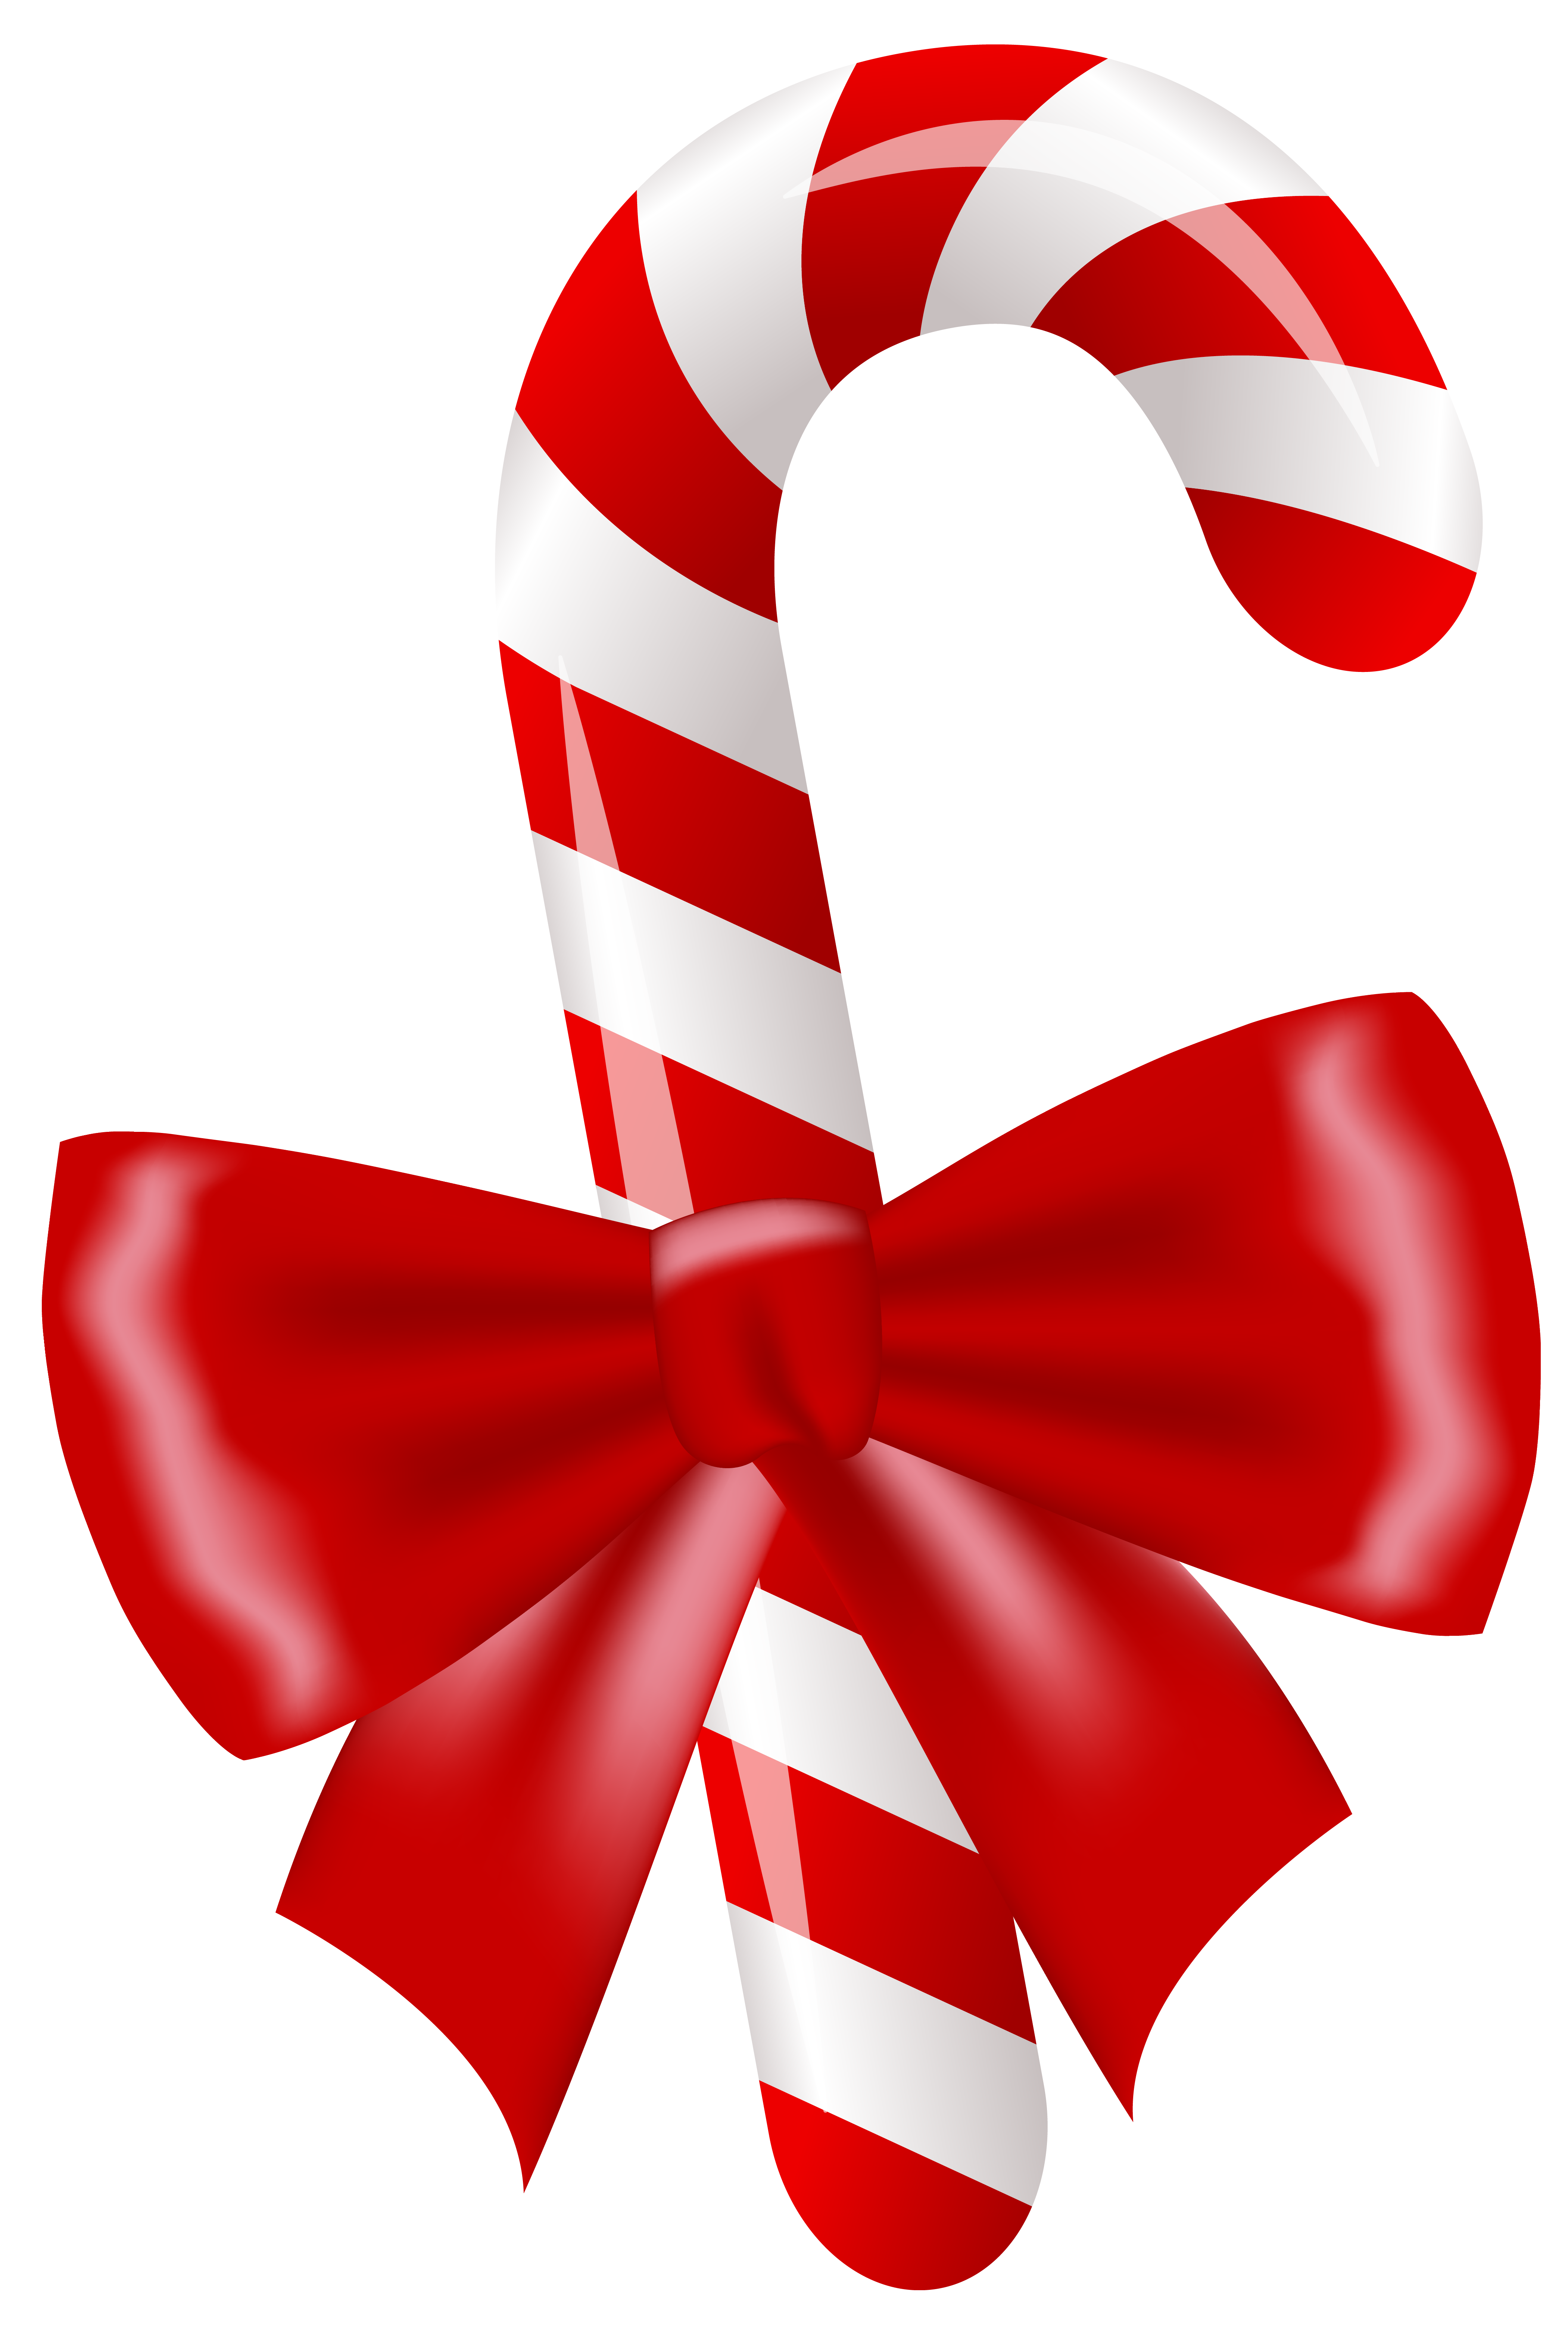 Christmas candy png. Cane clipart image gallery